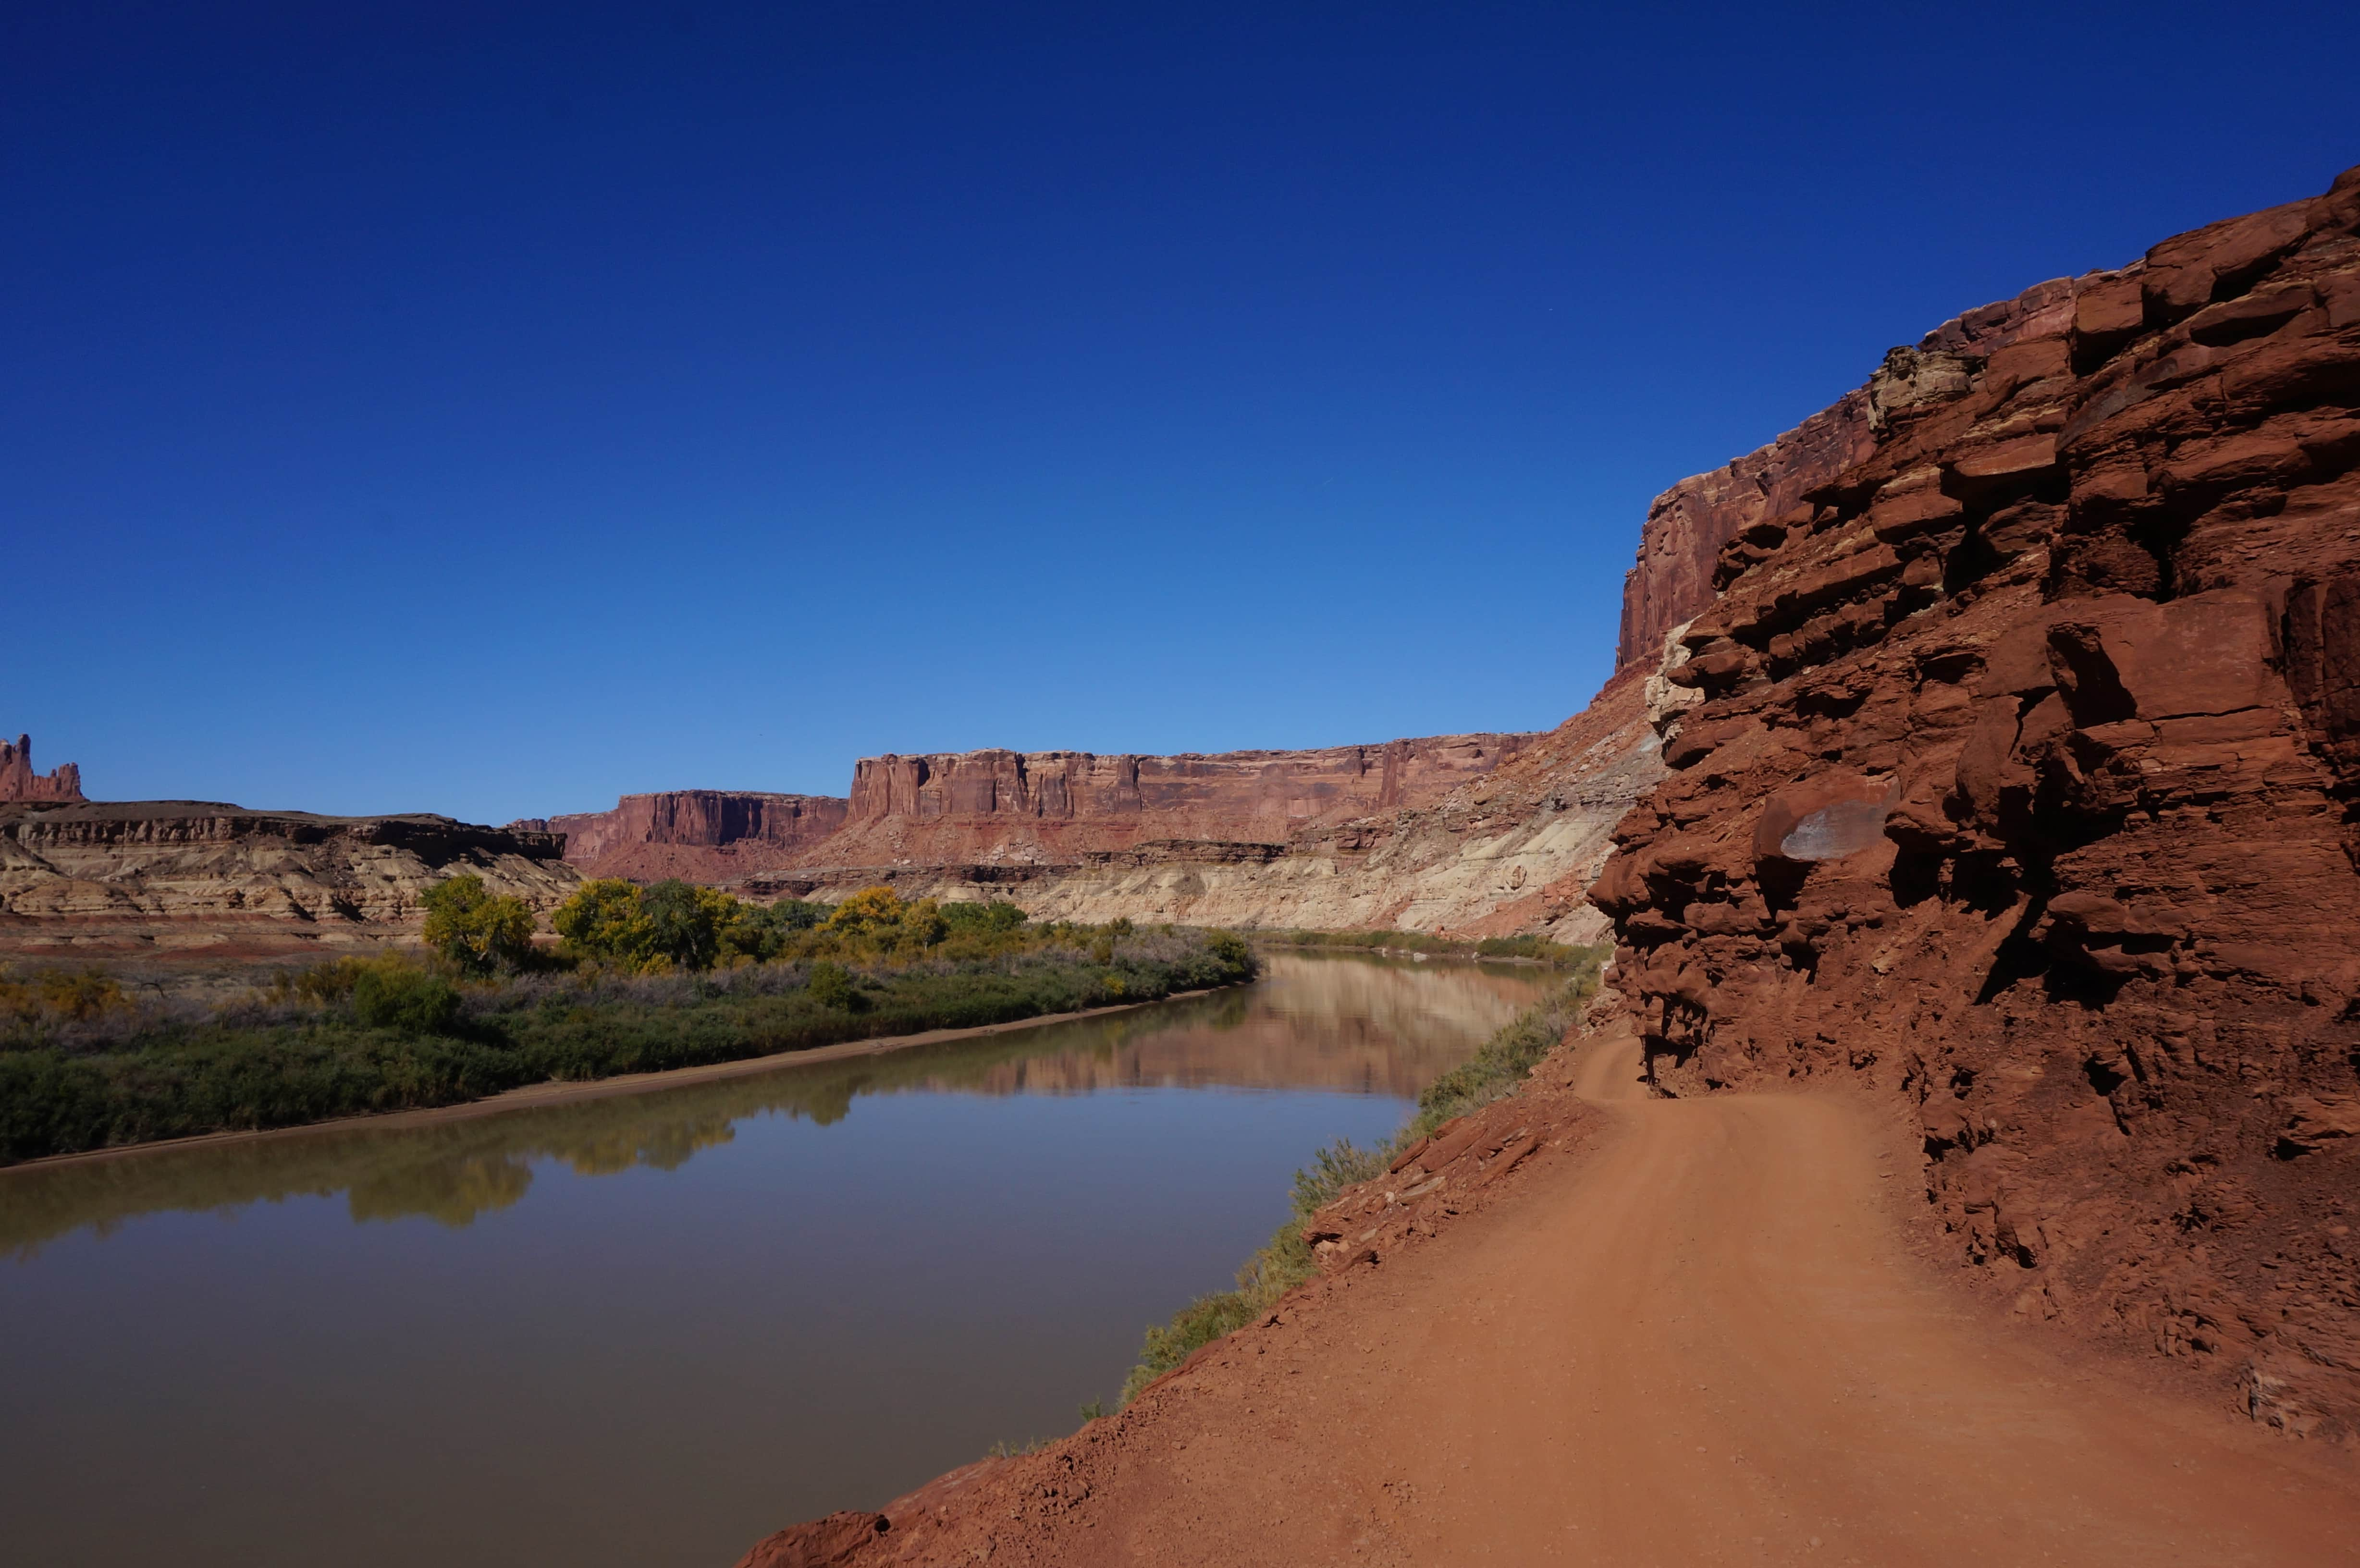 The Green River along the White Rim Trail in Canyonlands National Park